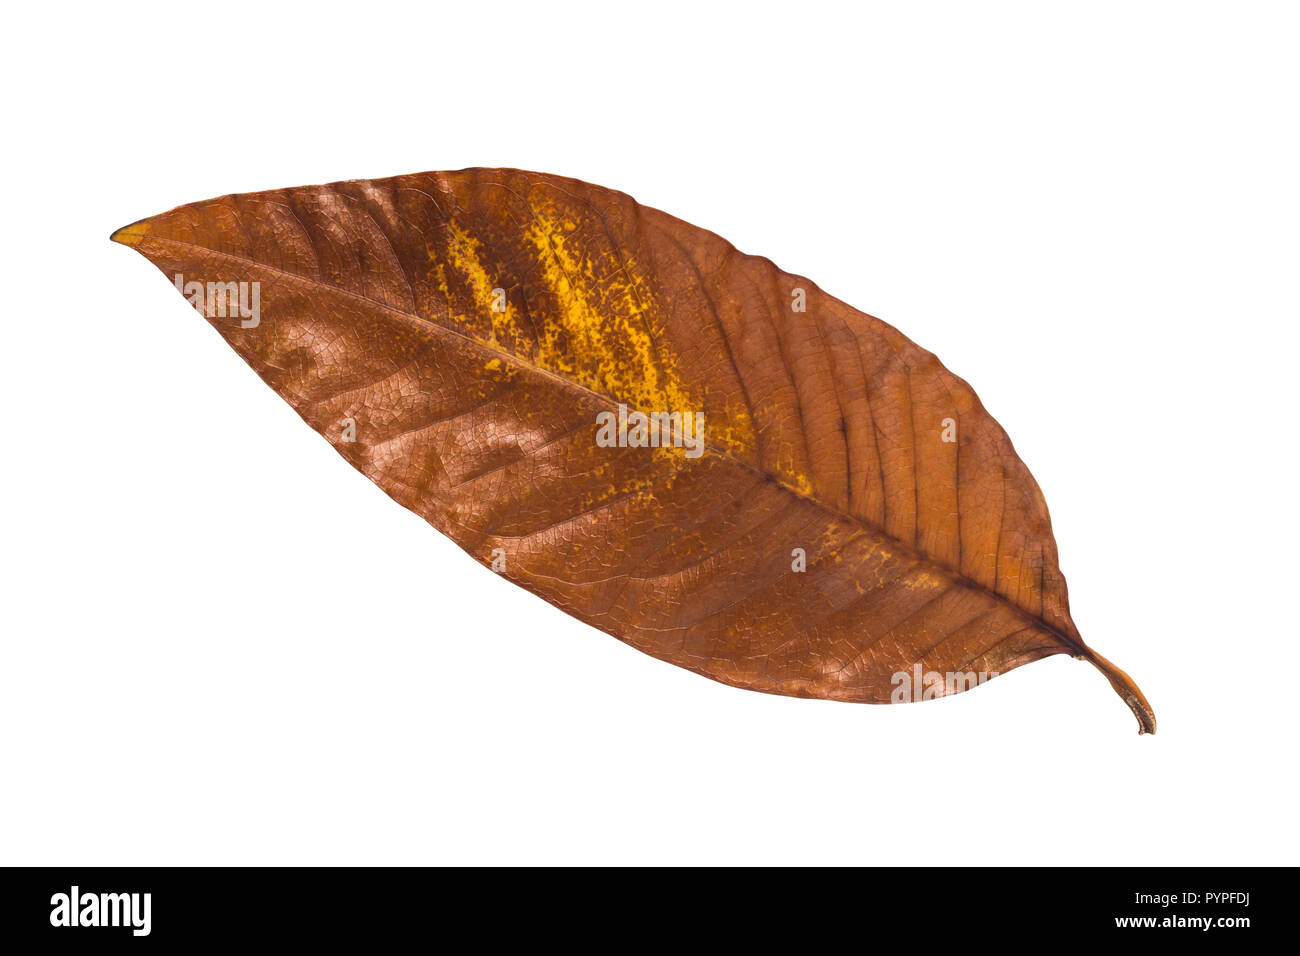 Autumn tree leaf on white background, vintage style Stock Photo